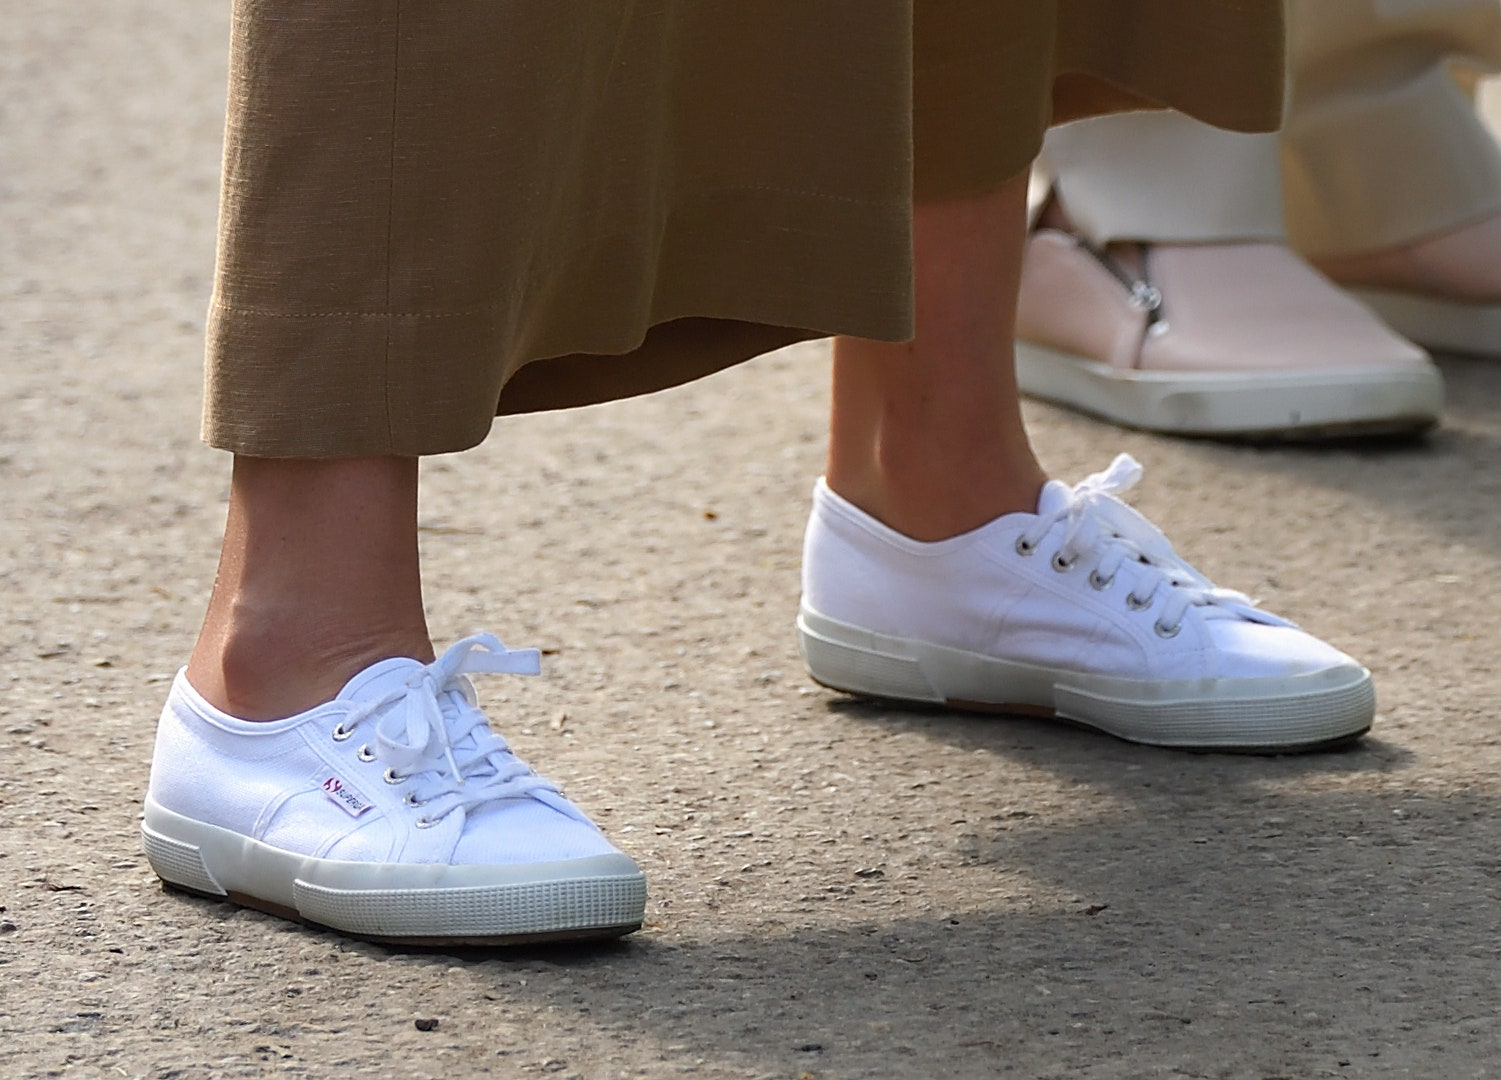 Kate Middleton's sneakers at the 2019 Chelsea Flower Show